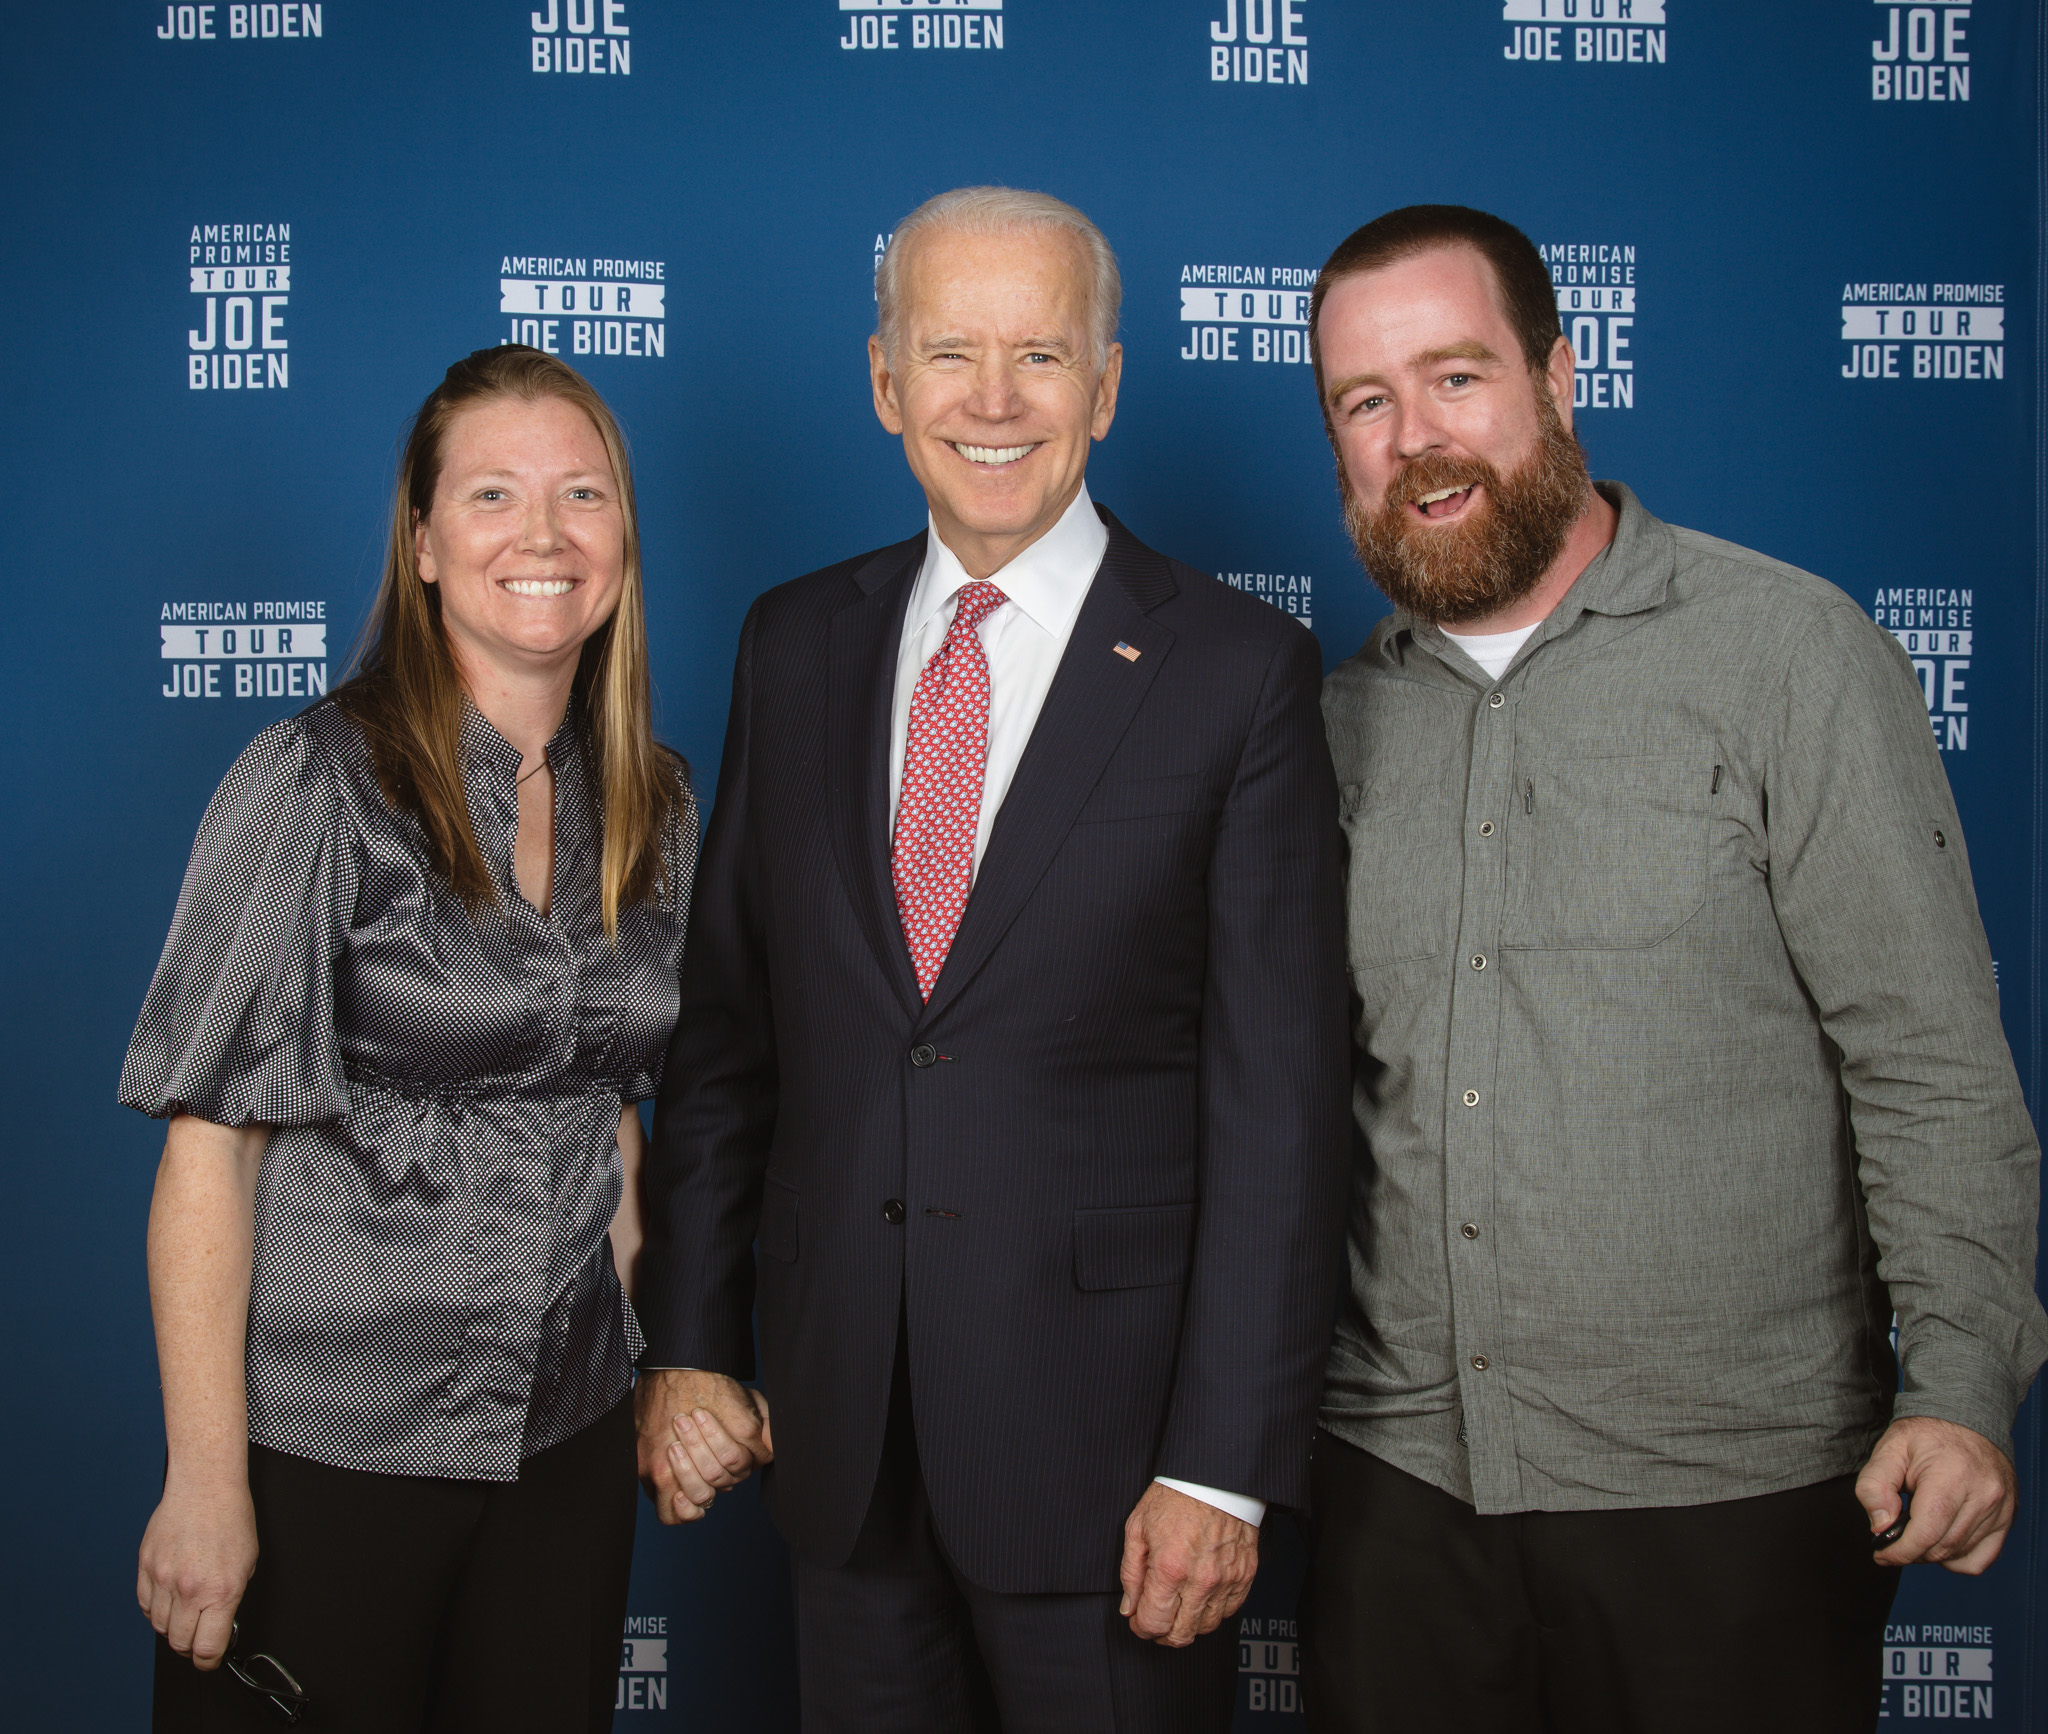 Will Thomas and Julie Thomas from Forge Mountain Photography standing in a photo with Joe Biden on the American Promise tour. This photo was taken at the end of the event after we were done photographing. Forge Mountain Photography was hired by the presidents team to provide photography